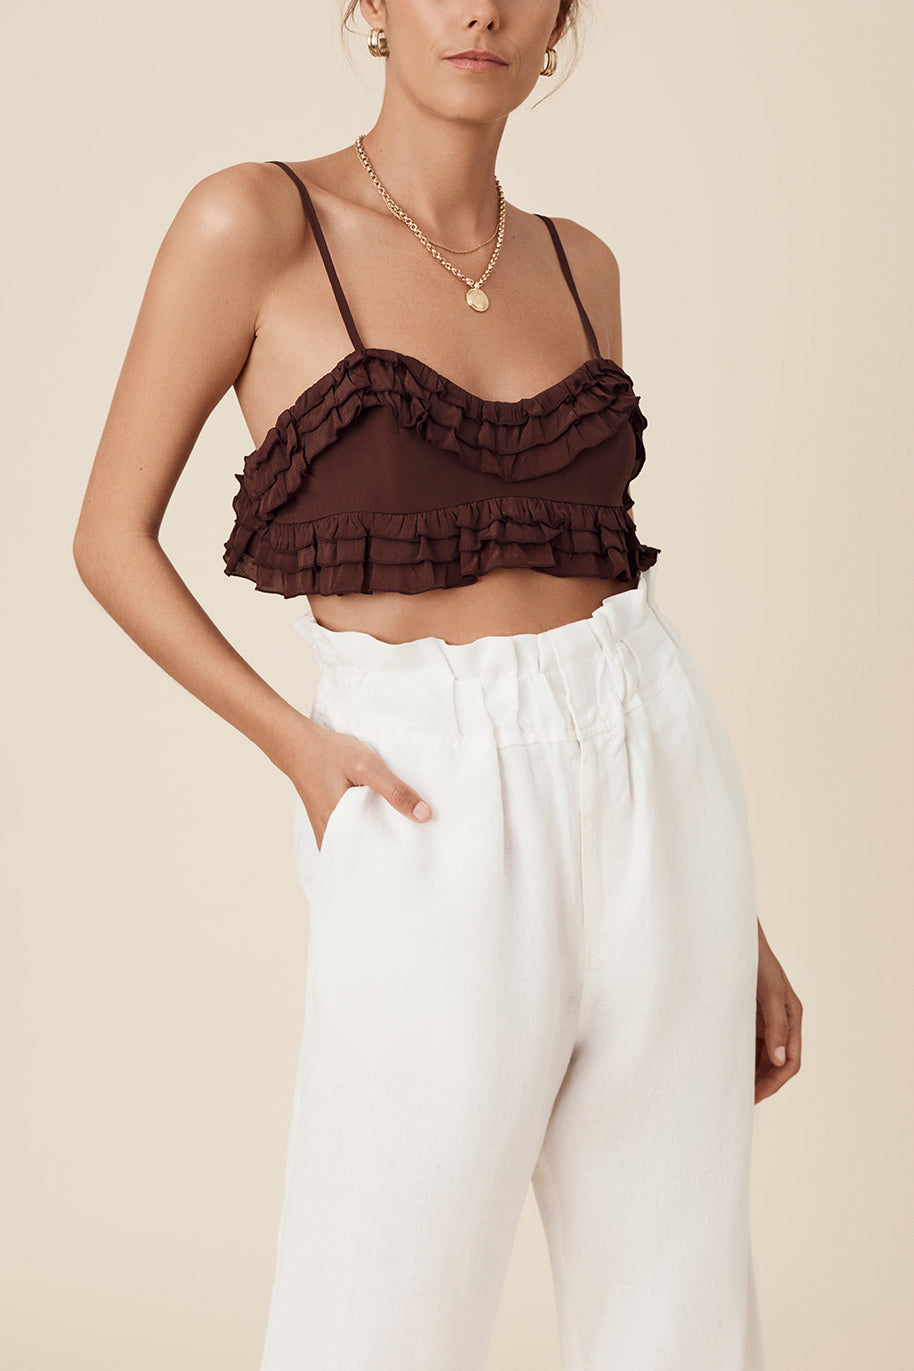 PEARL BRALETTE - CHOCOLATE